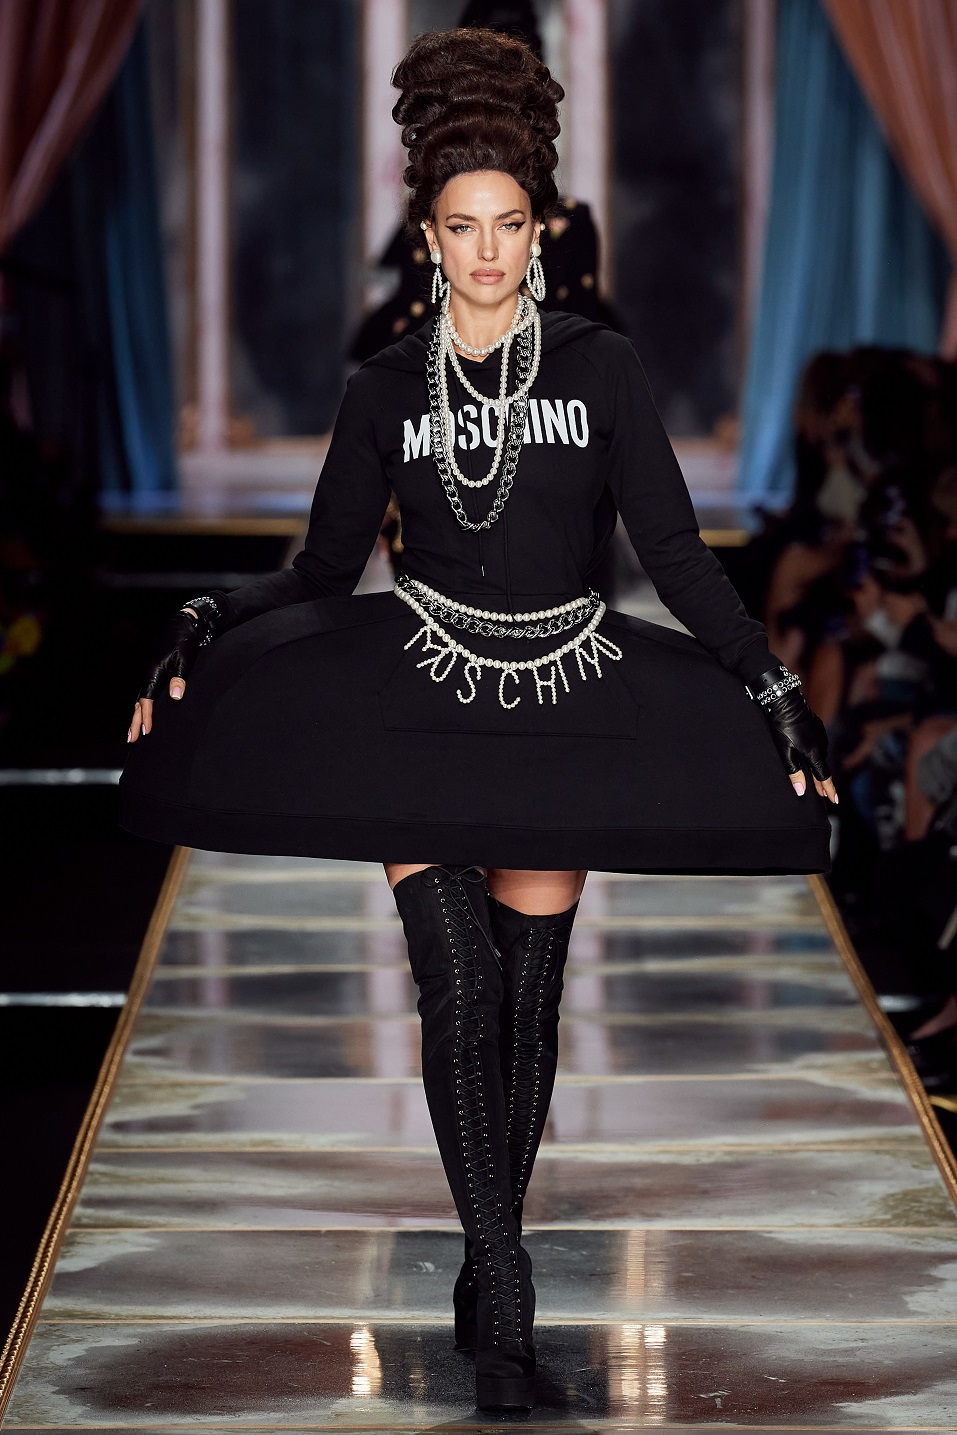 Irina Shayk walked the Moschino fall 2020 catwalk in sky-high wigs inspired by Marie-Antoinette